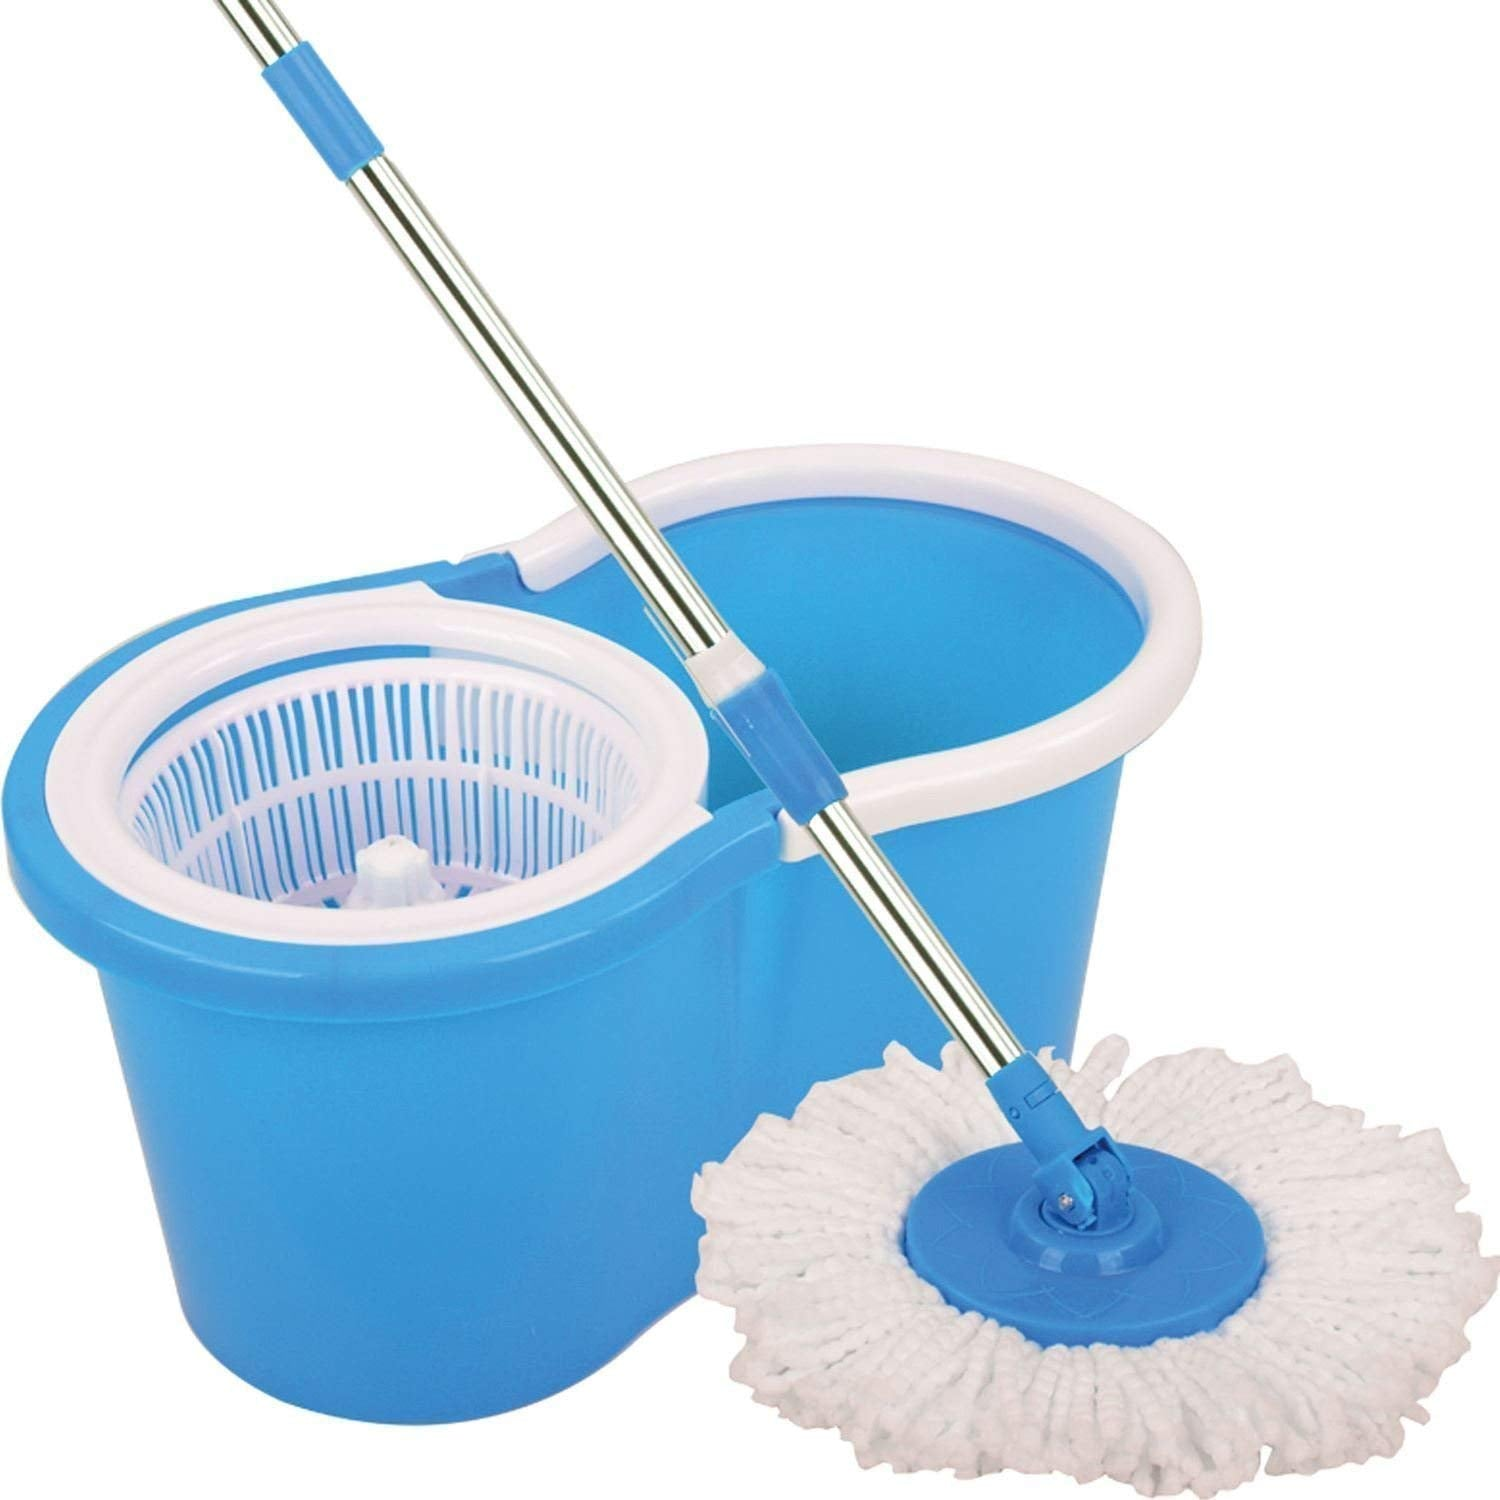 Super Easy Instant Mop with 2 extra head mops